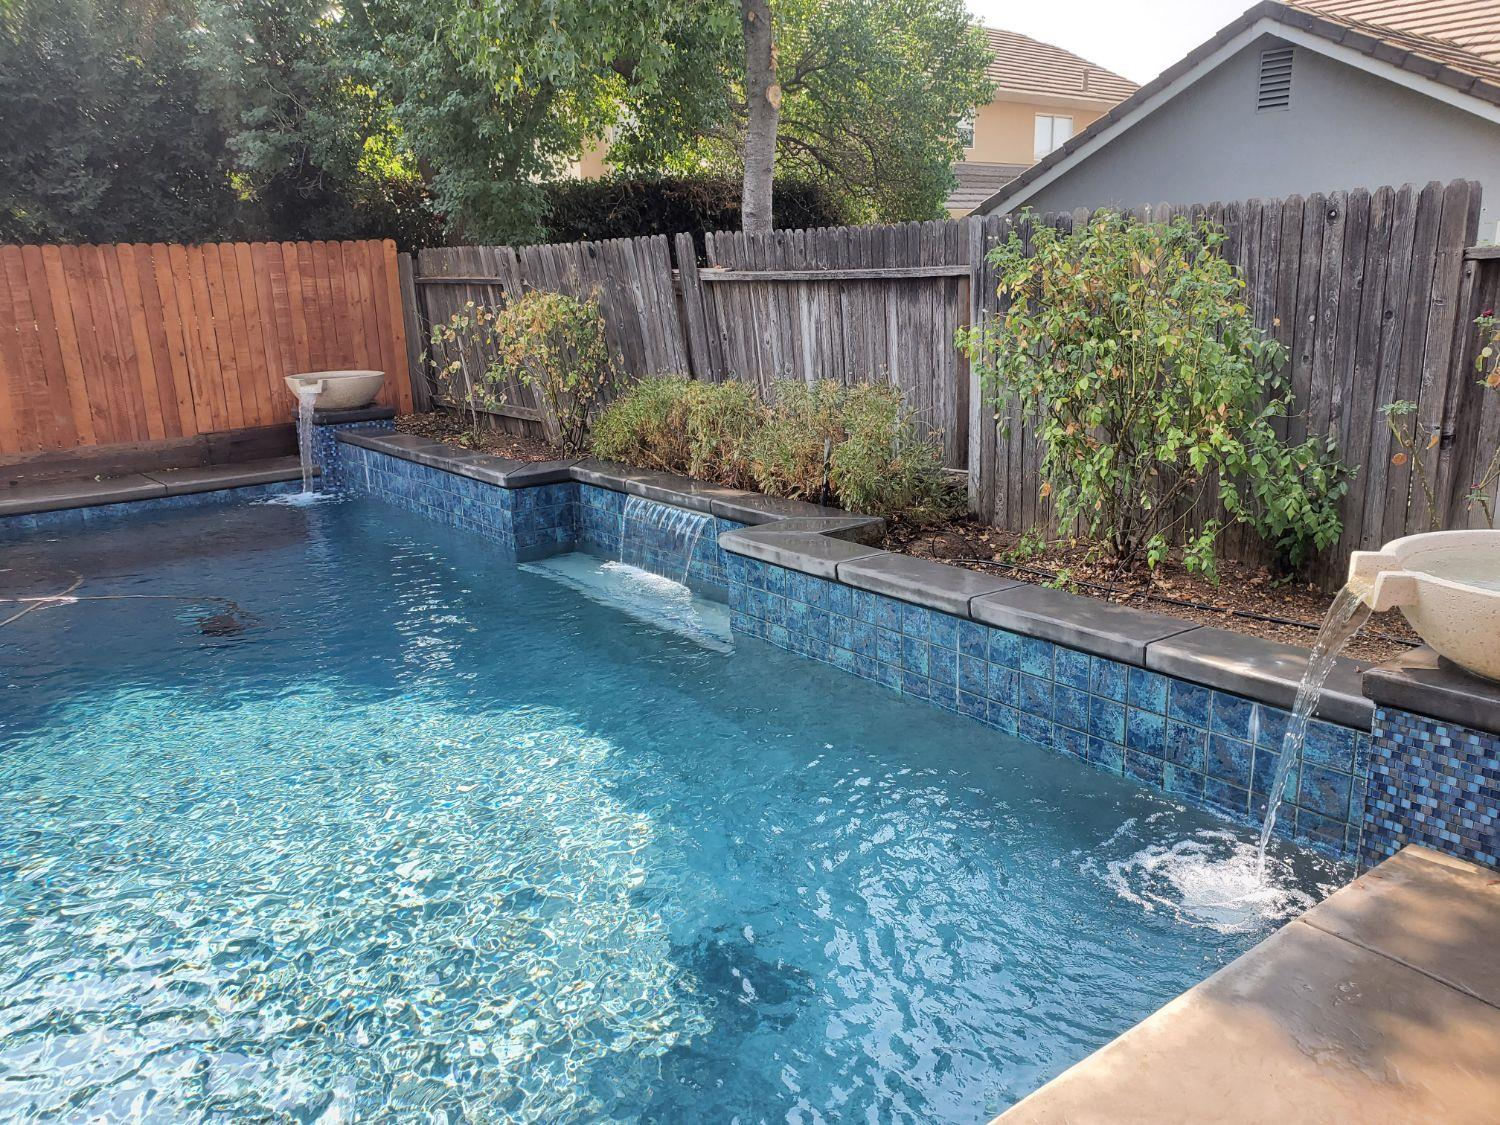 Photo 5 for Listing #221120799